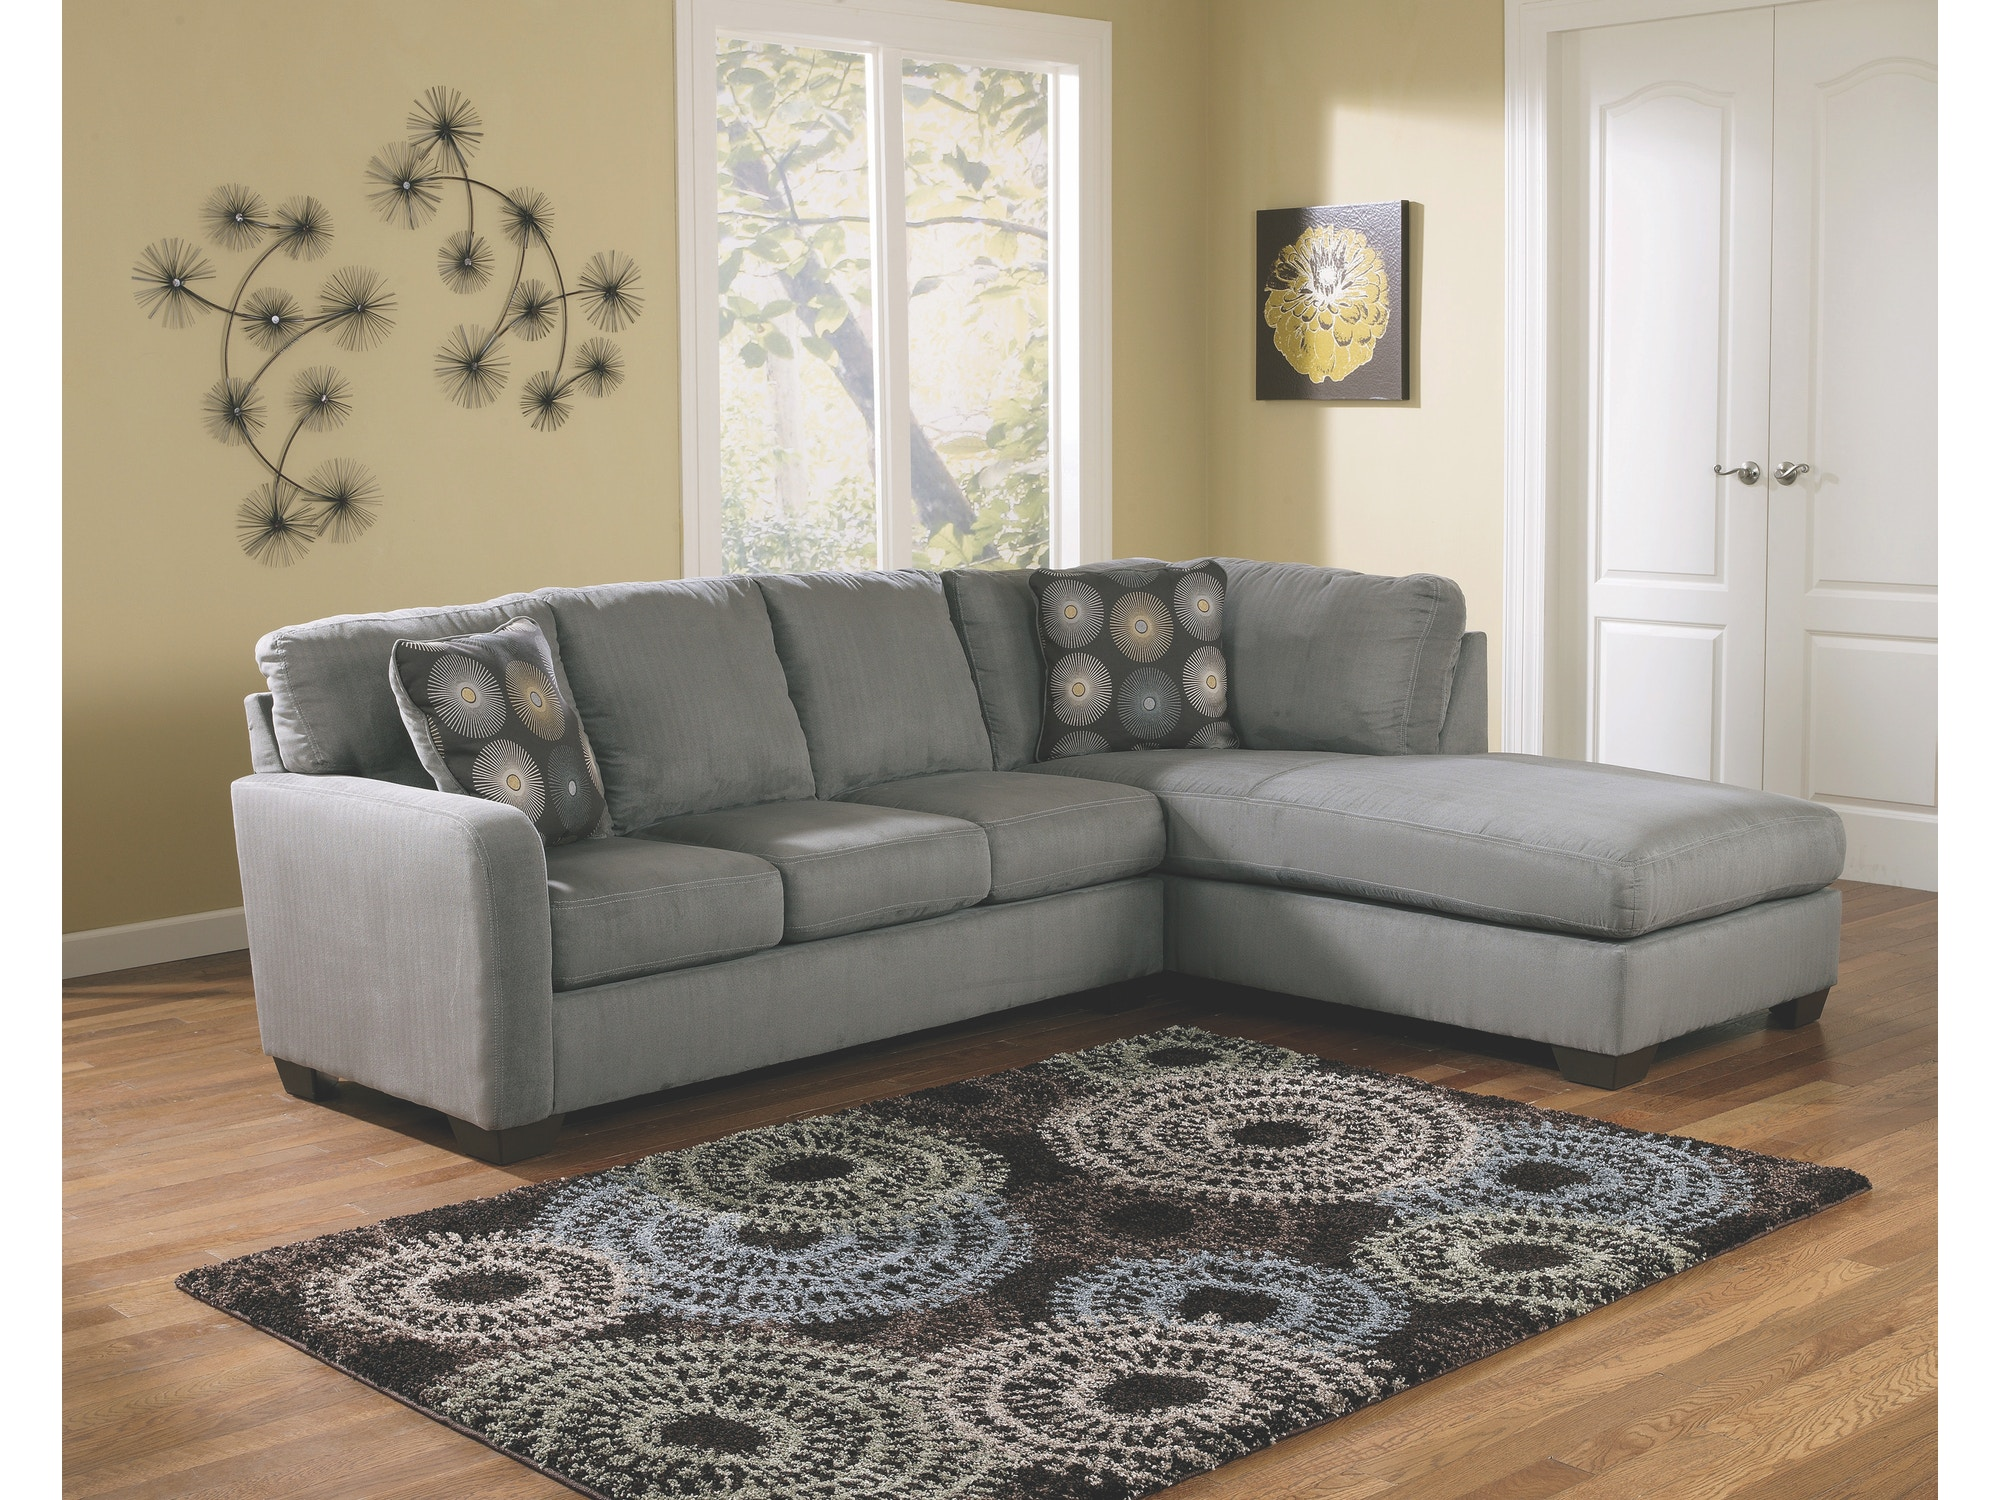 large power reclining tone with and modern leather sectionals sofas grey chaise recliner sectional sofa dual chairs